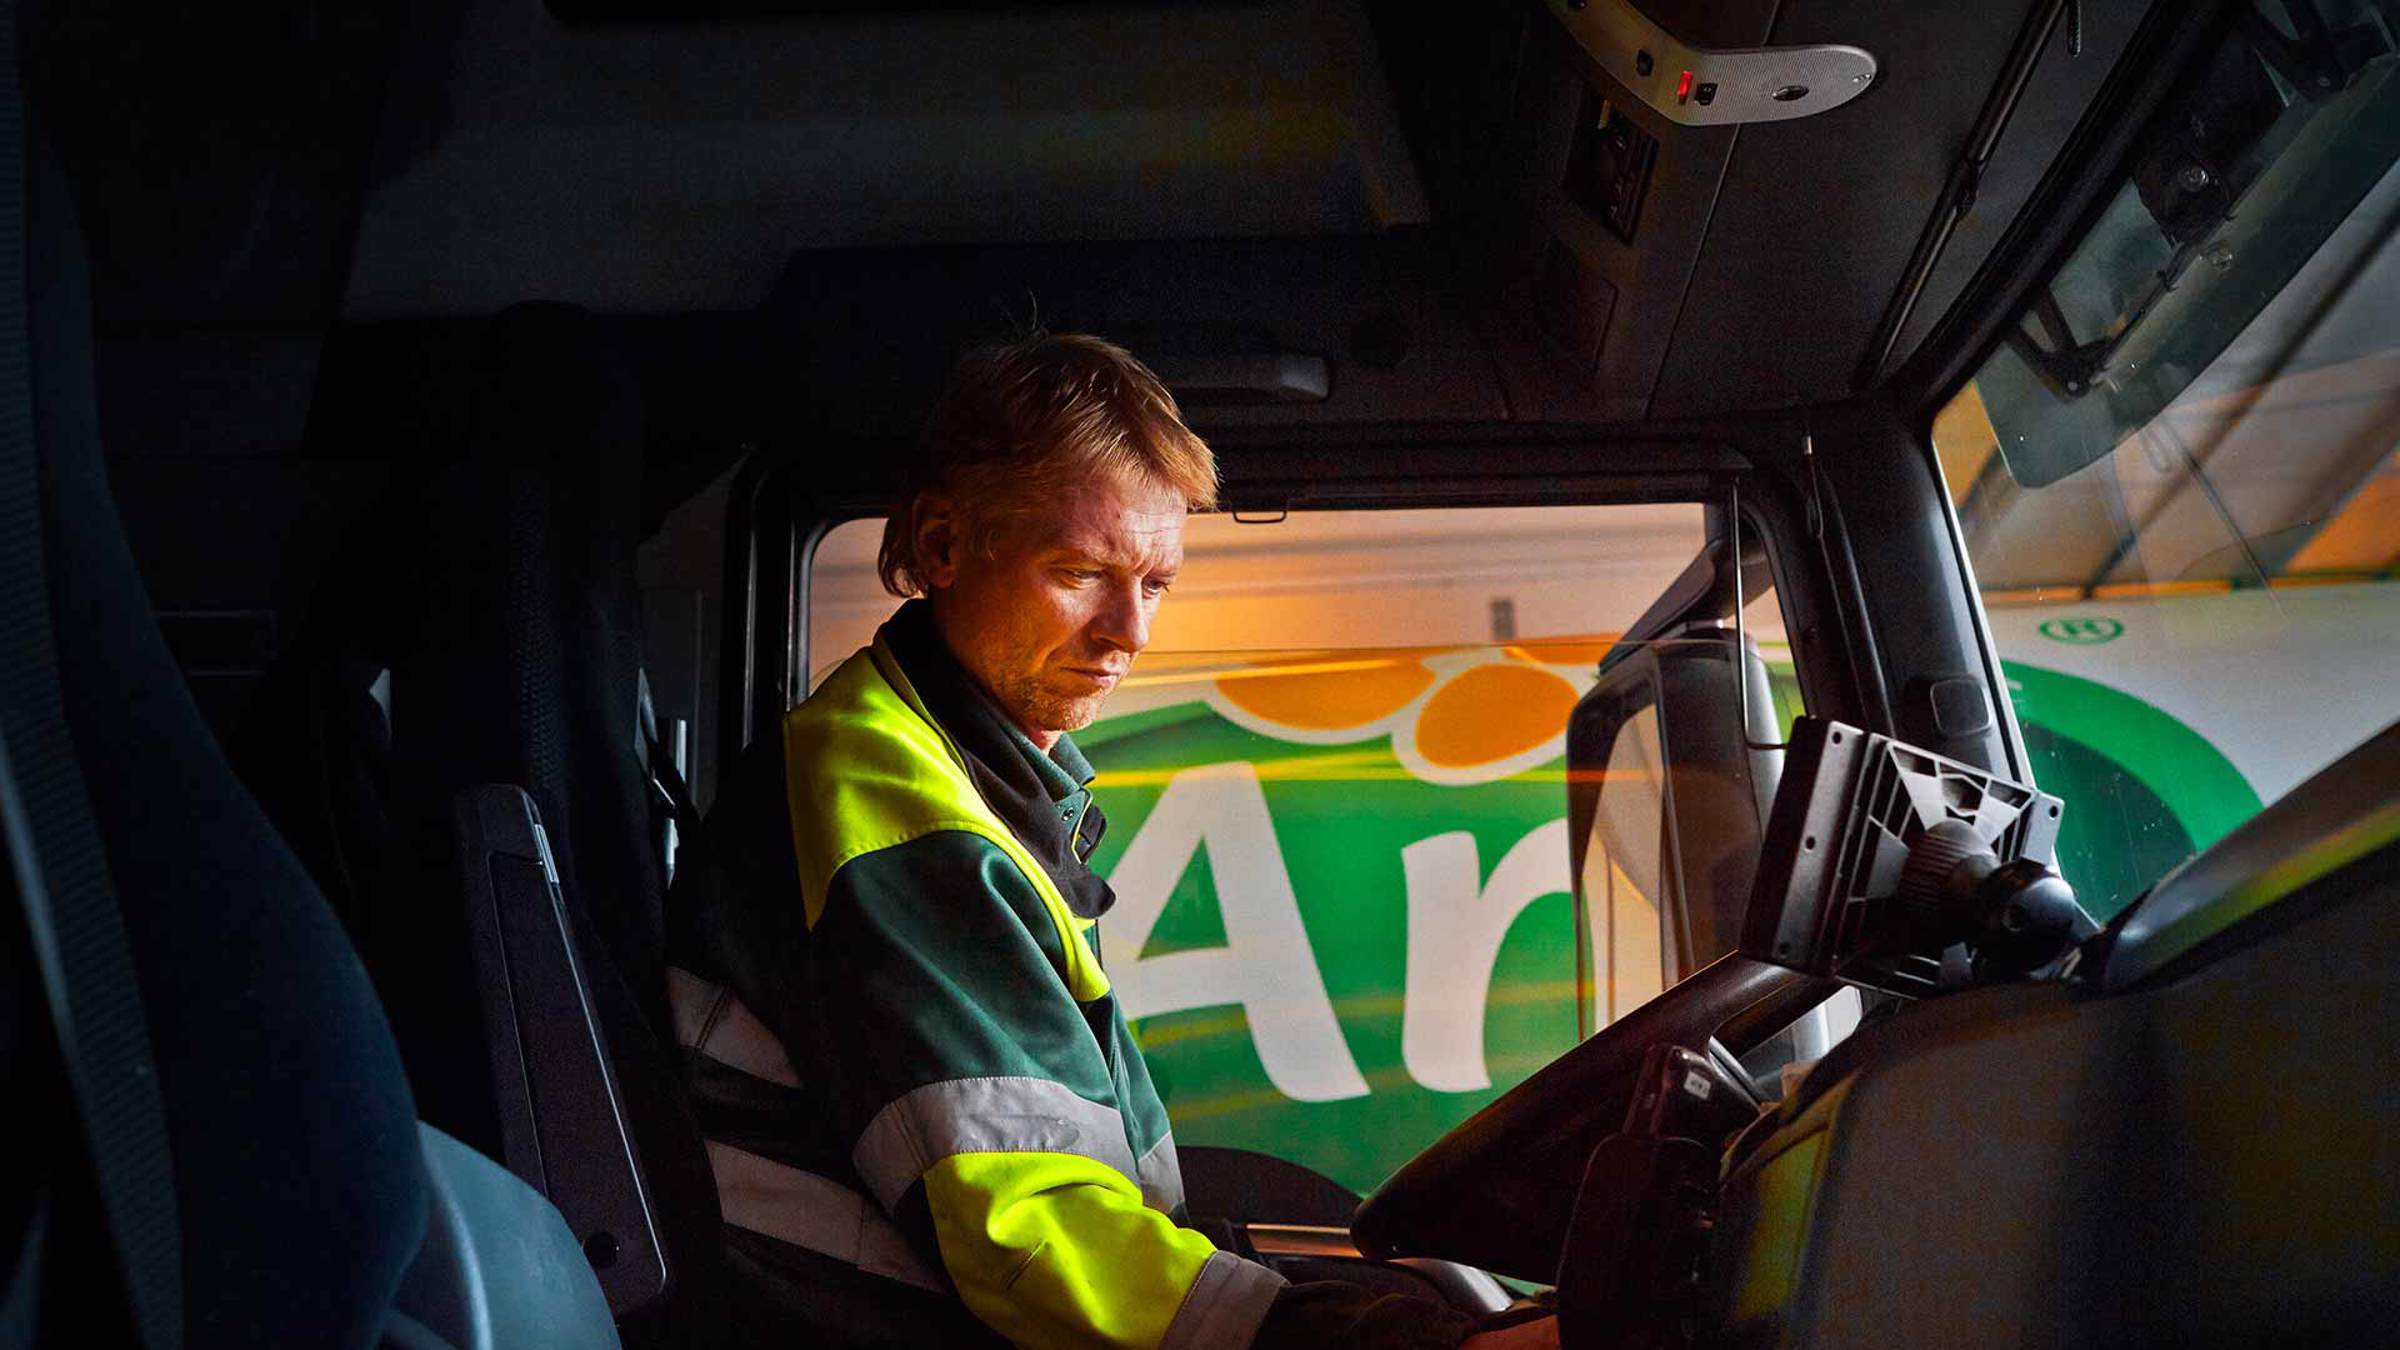 An Arla truck driver in his cab